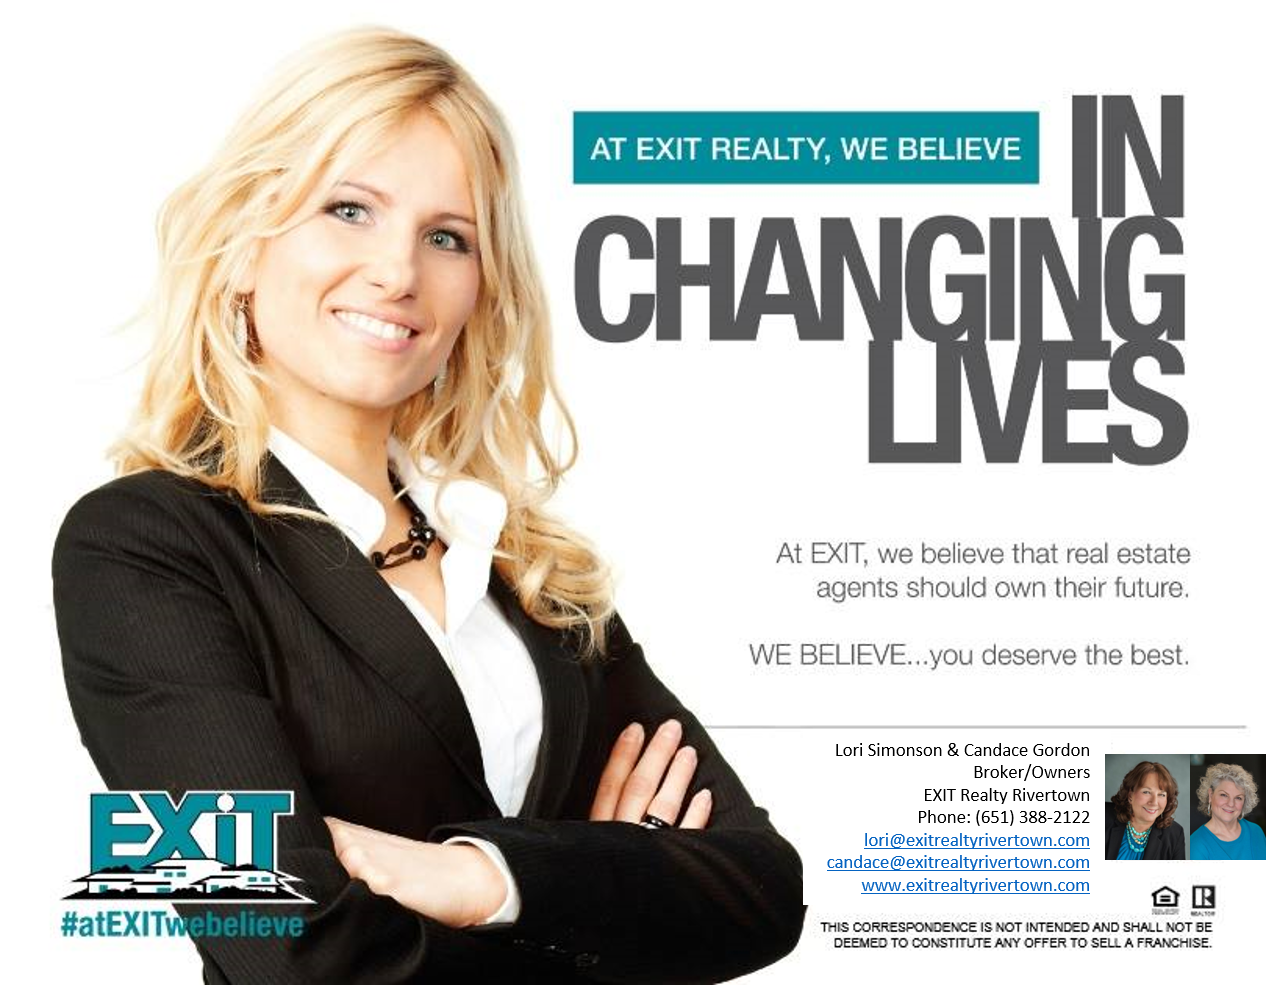 At EXIT Realty Rivertown, we believe in Changing Lives. #atEXITwebelieve